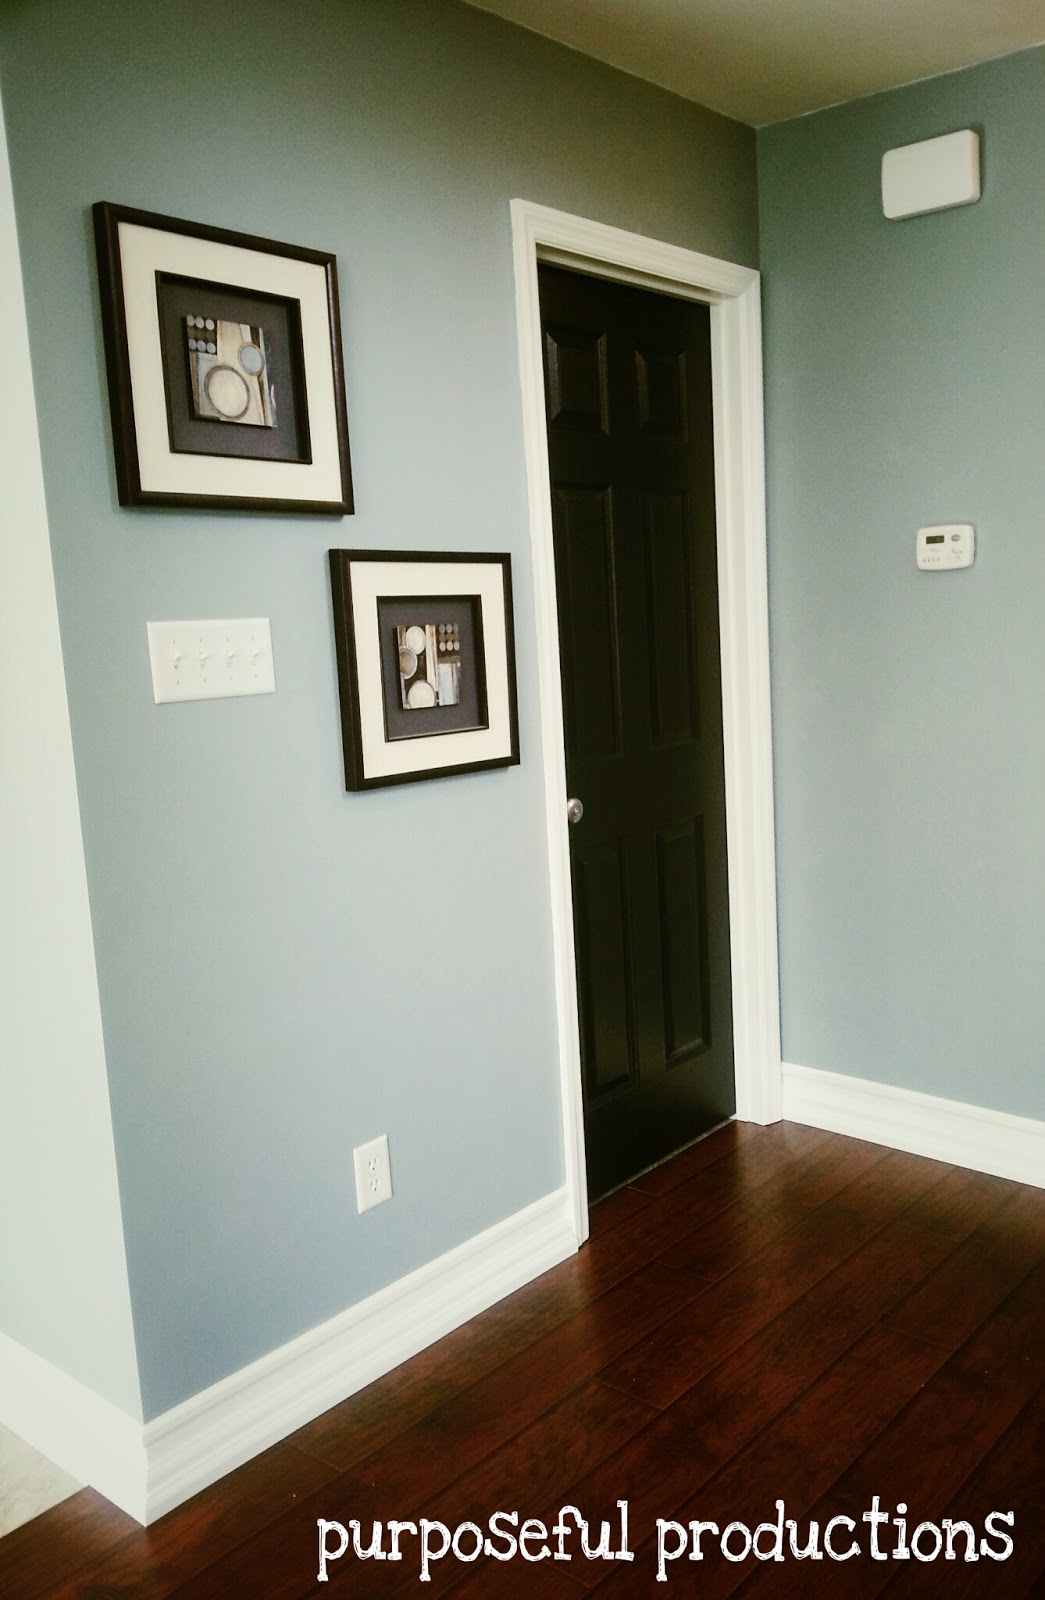 purposeful productions diy painted doors. Black Bedroom Furniture Sets. Home Design Ideas